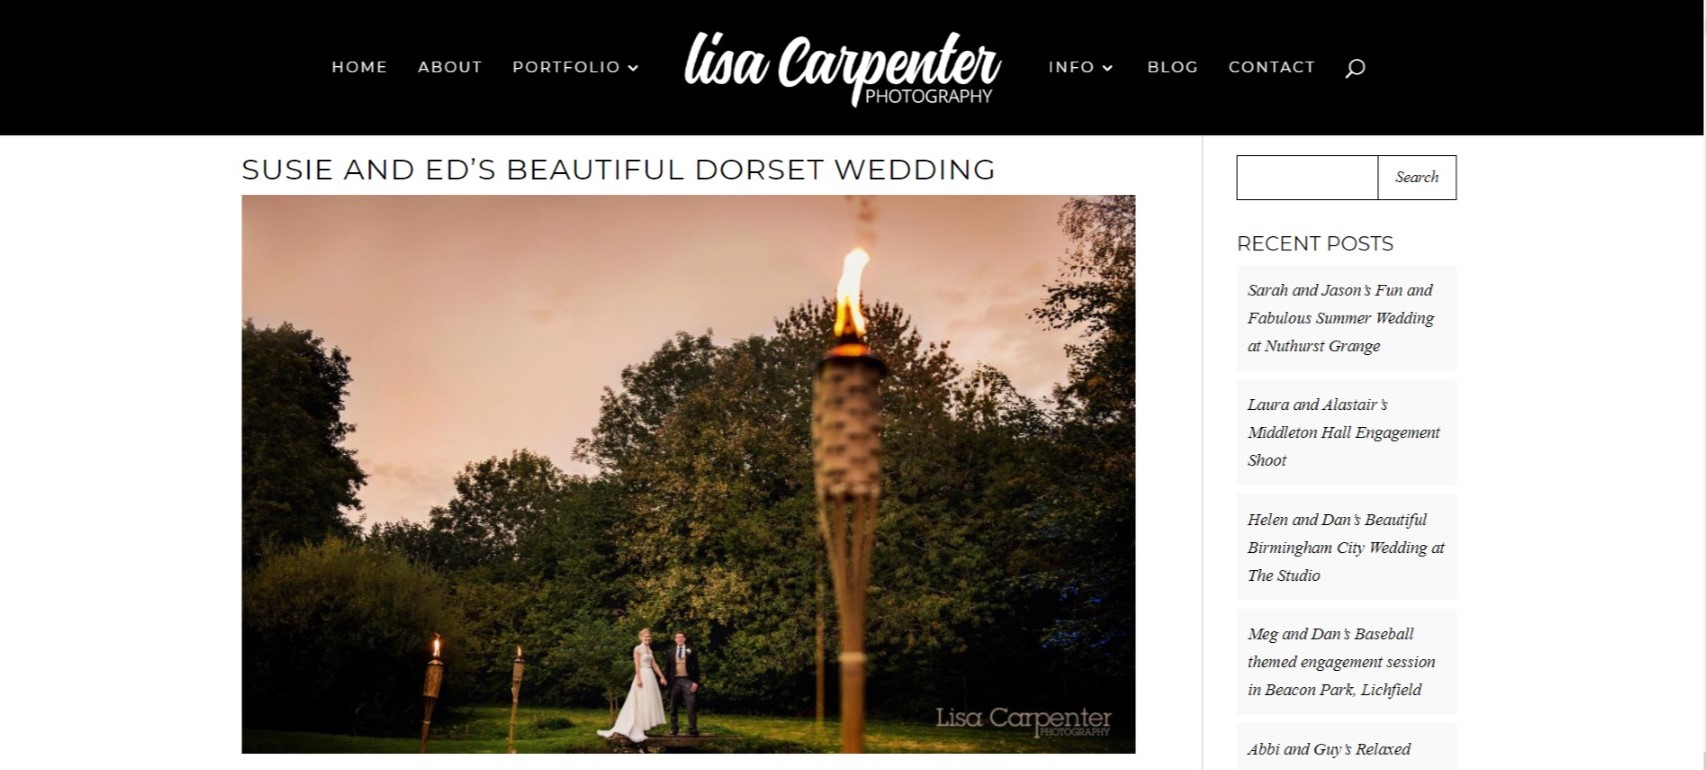 Lisa Carpenter Photography Blog 2015